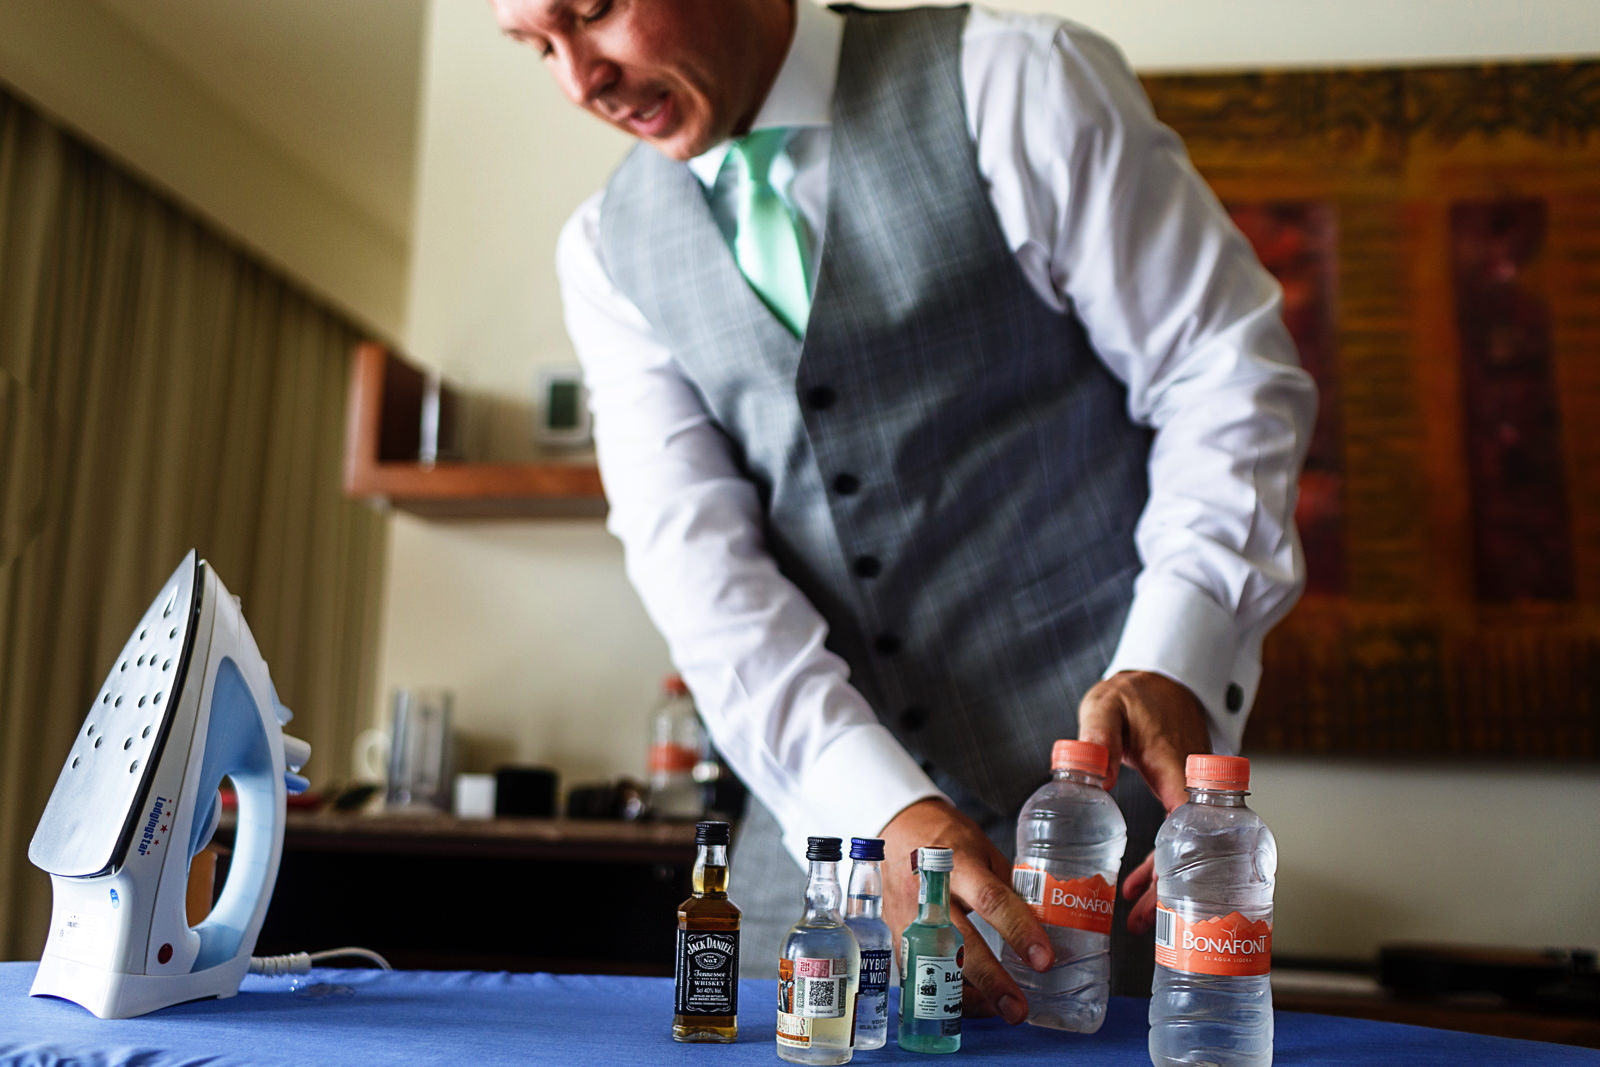 The groom takes all the mini-bottles of alcohol and place them over the ironing table